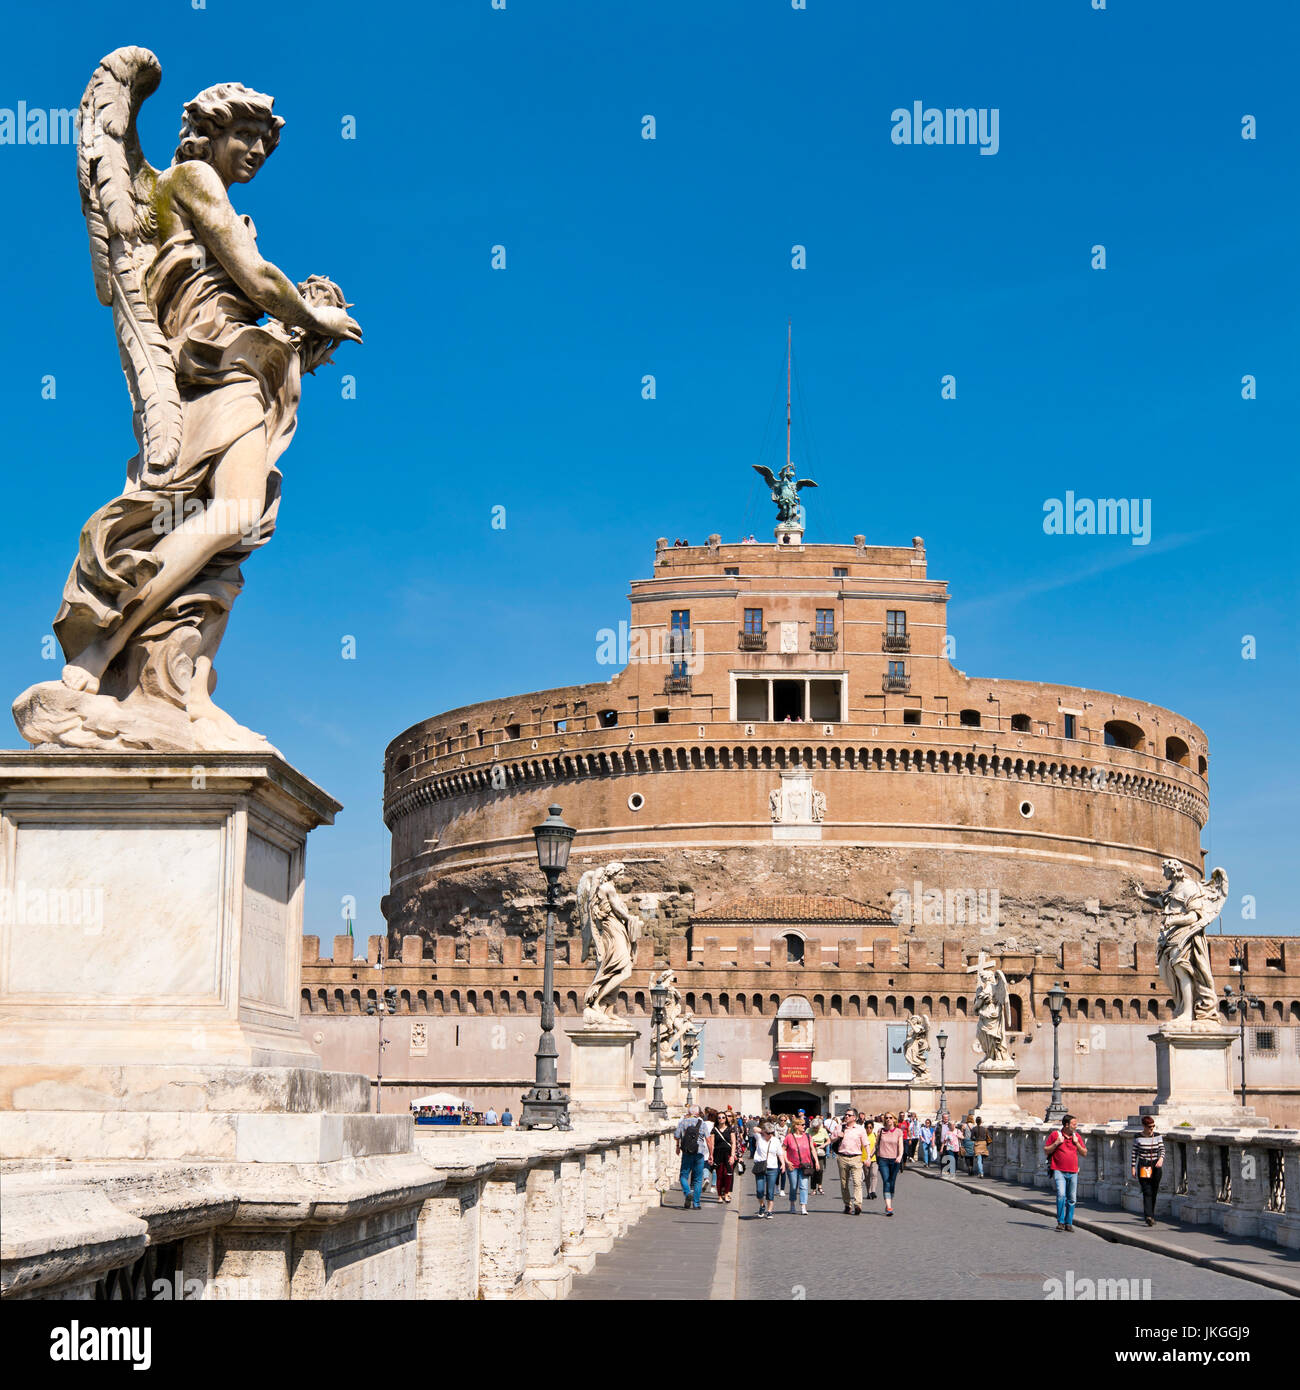 Square view of an Angel statue adorning the bridge towards Castel Sant'Angelo in Rome. - Stock Image